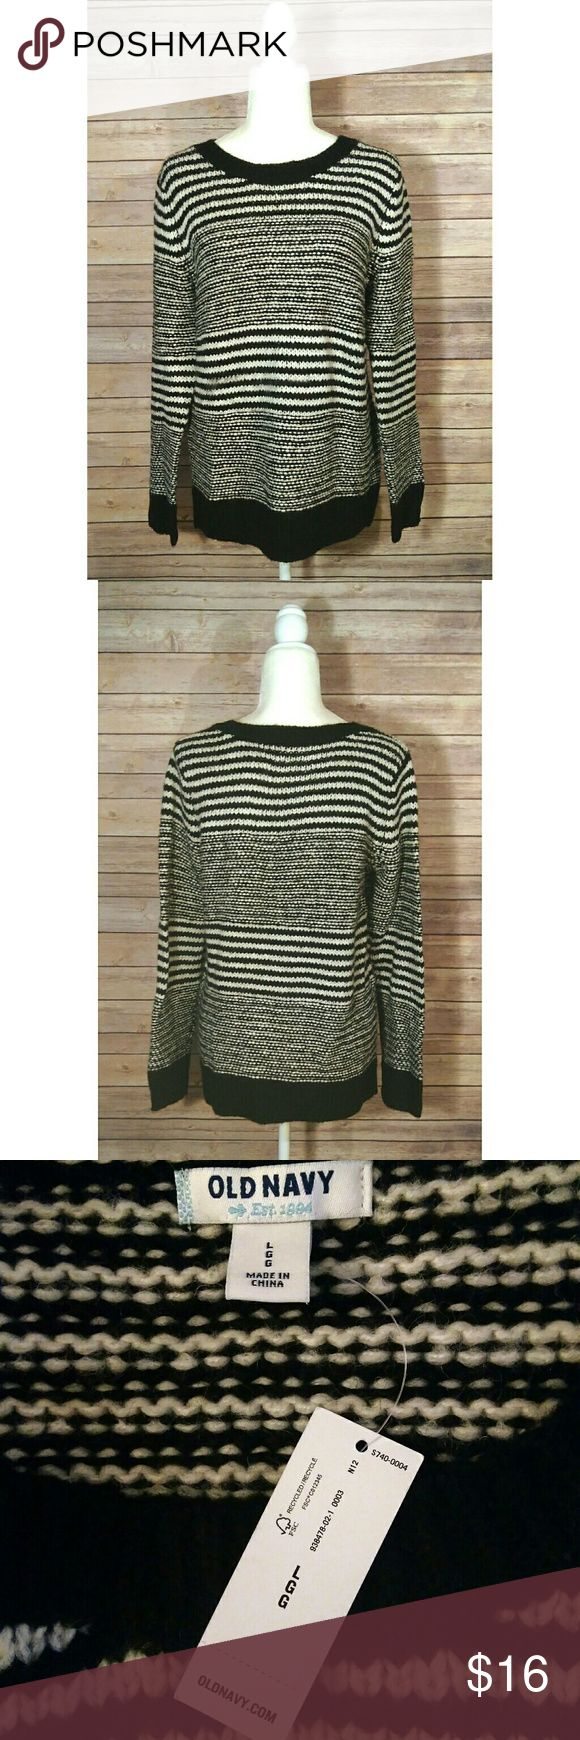 Old Navy black and cream chunky knit sweater NWT Old Navy sweater in a black and cream striped chunky knit.  It is a long sleeve sweater.  It has a round neck.  It is new with tags.   Pet free smoke free home. Old Navy Sweaters Crew & Scoop Necks